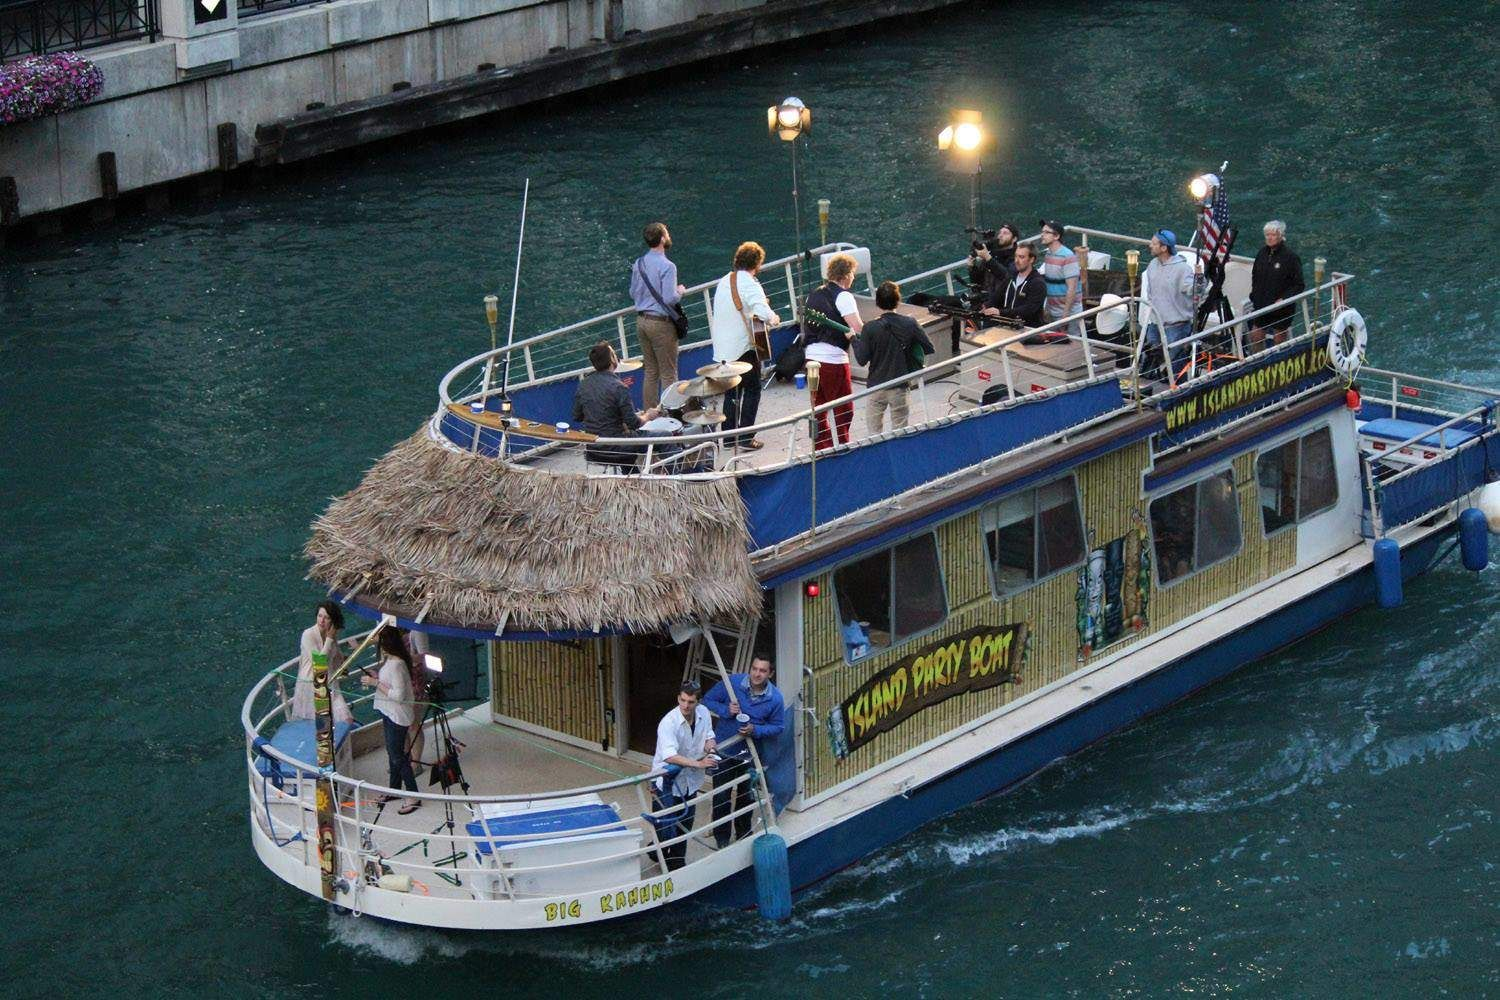 Island party boat rent a floating tiki bar in chicago